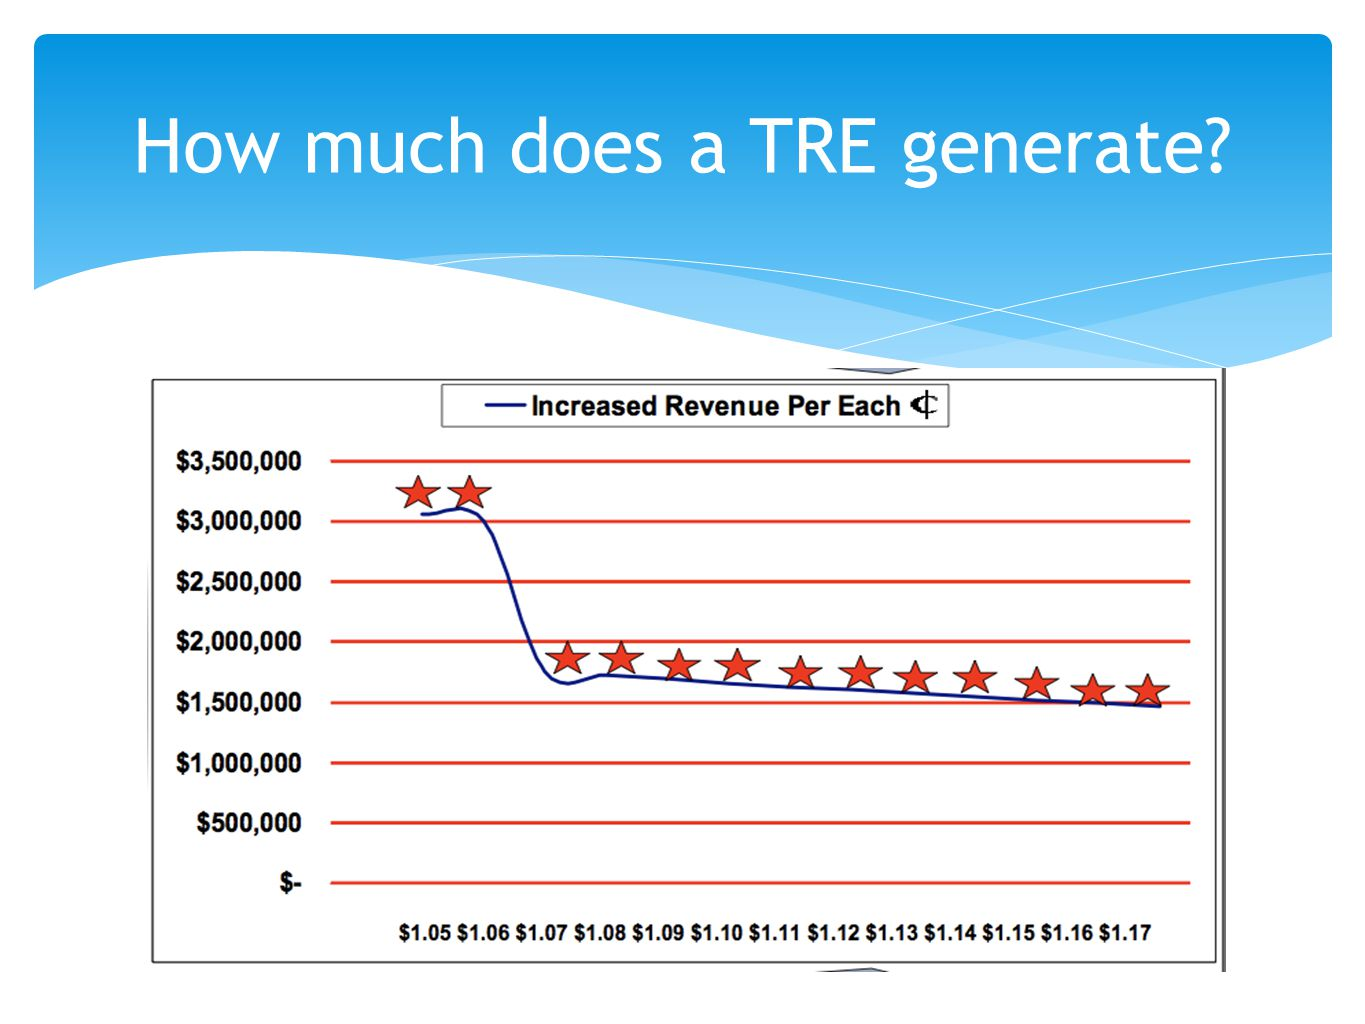 How much does a TRE generate